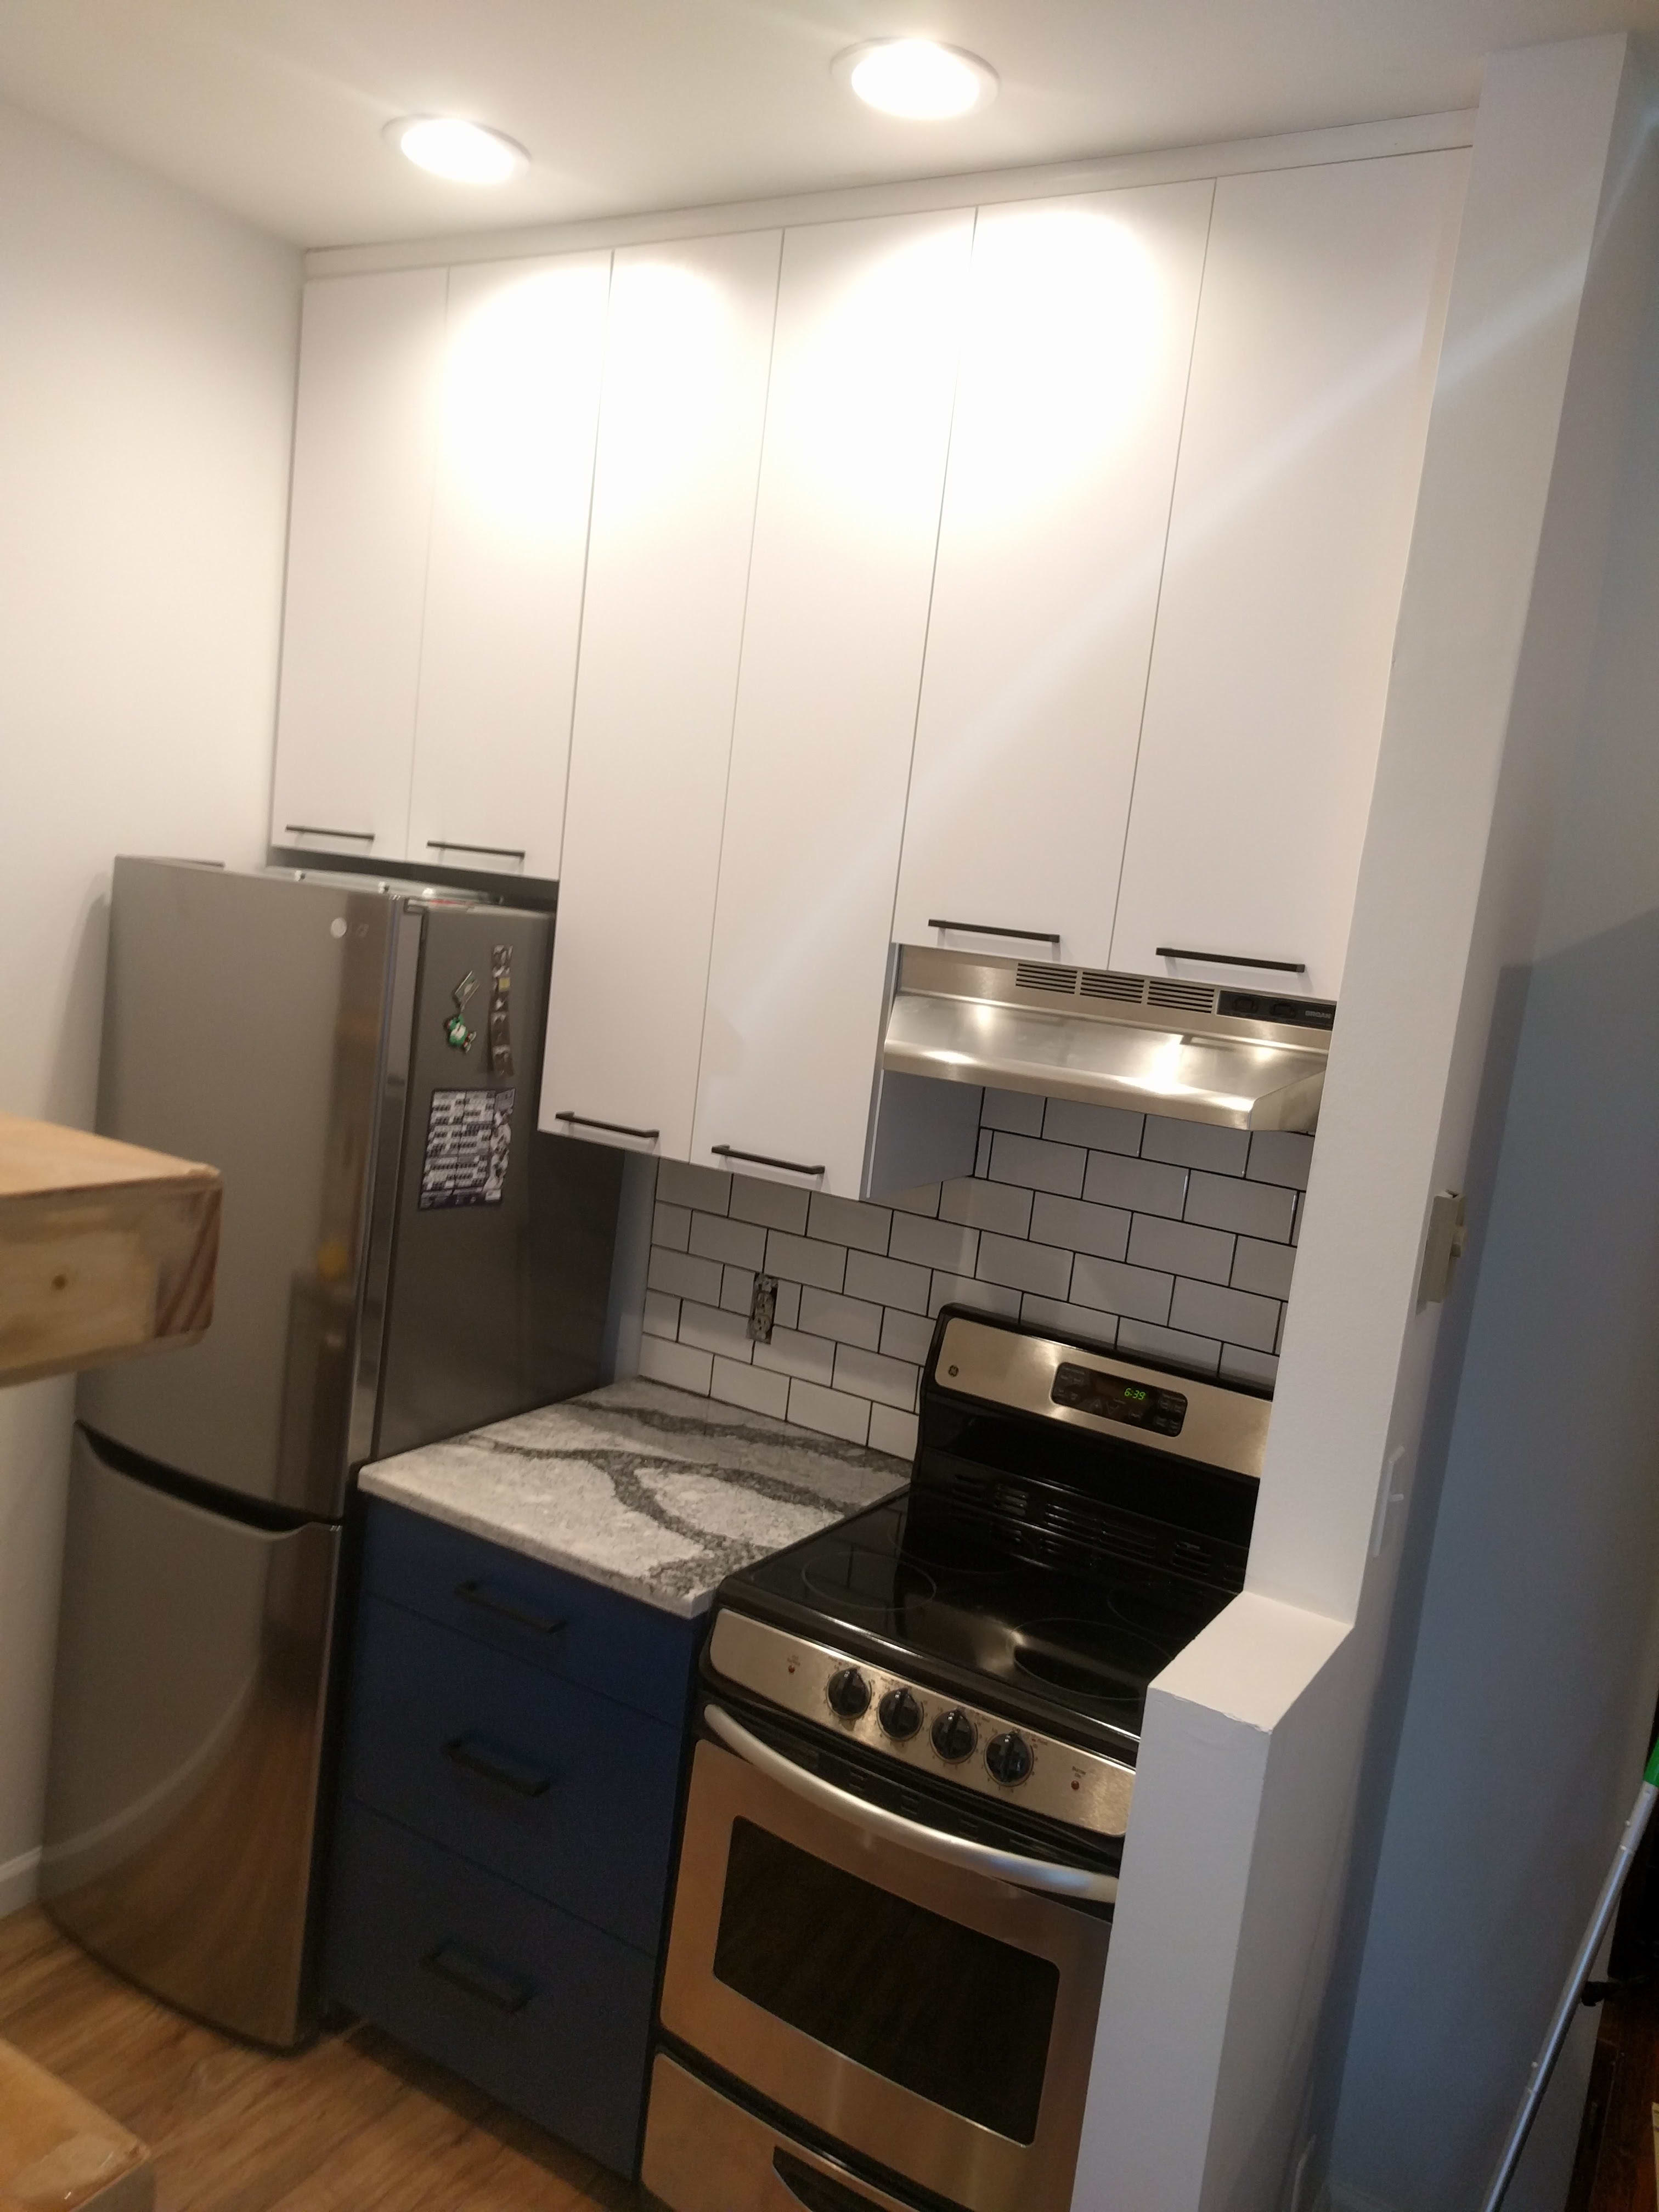 Before & After: Gut Remodel Of A Studio Apartment Kitchen